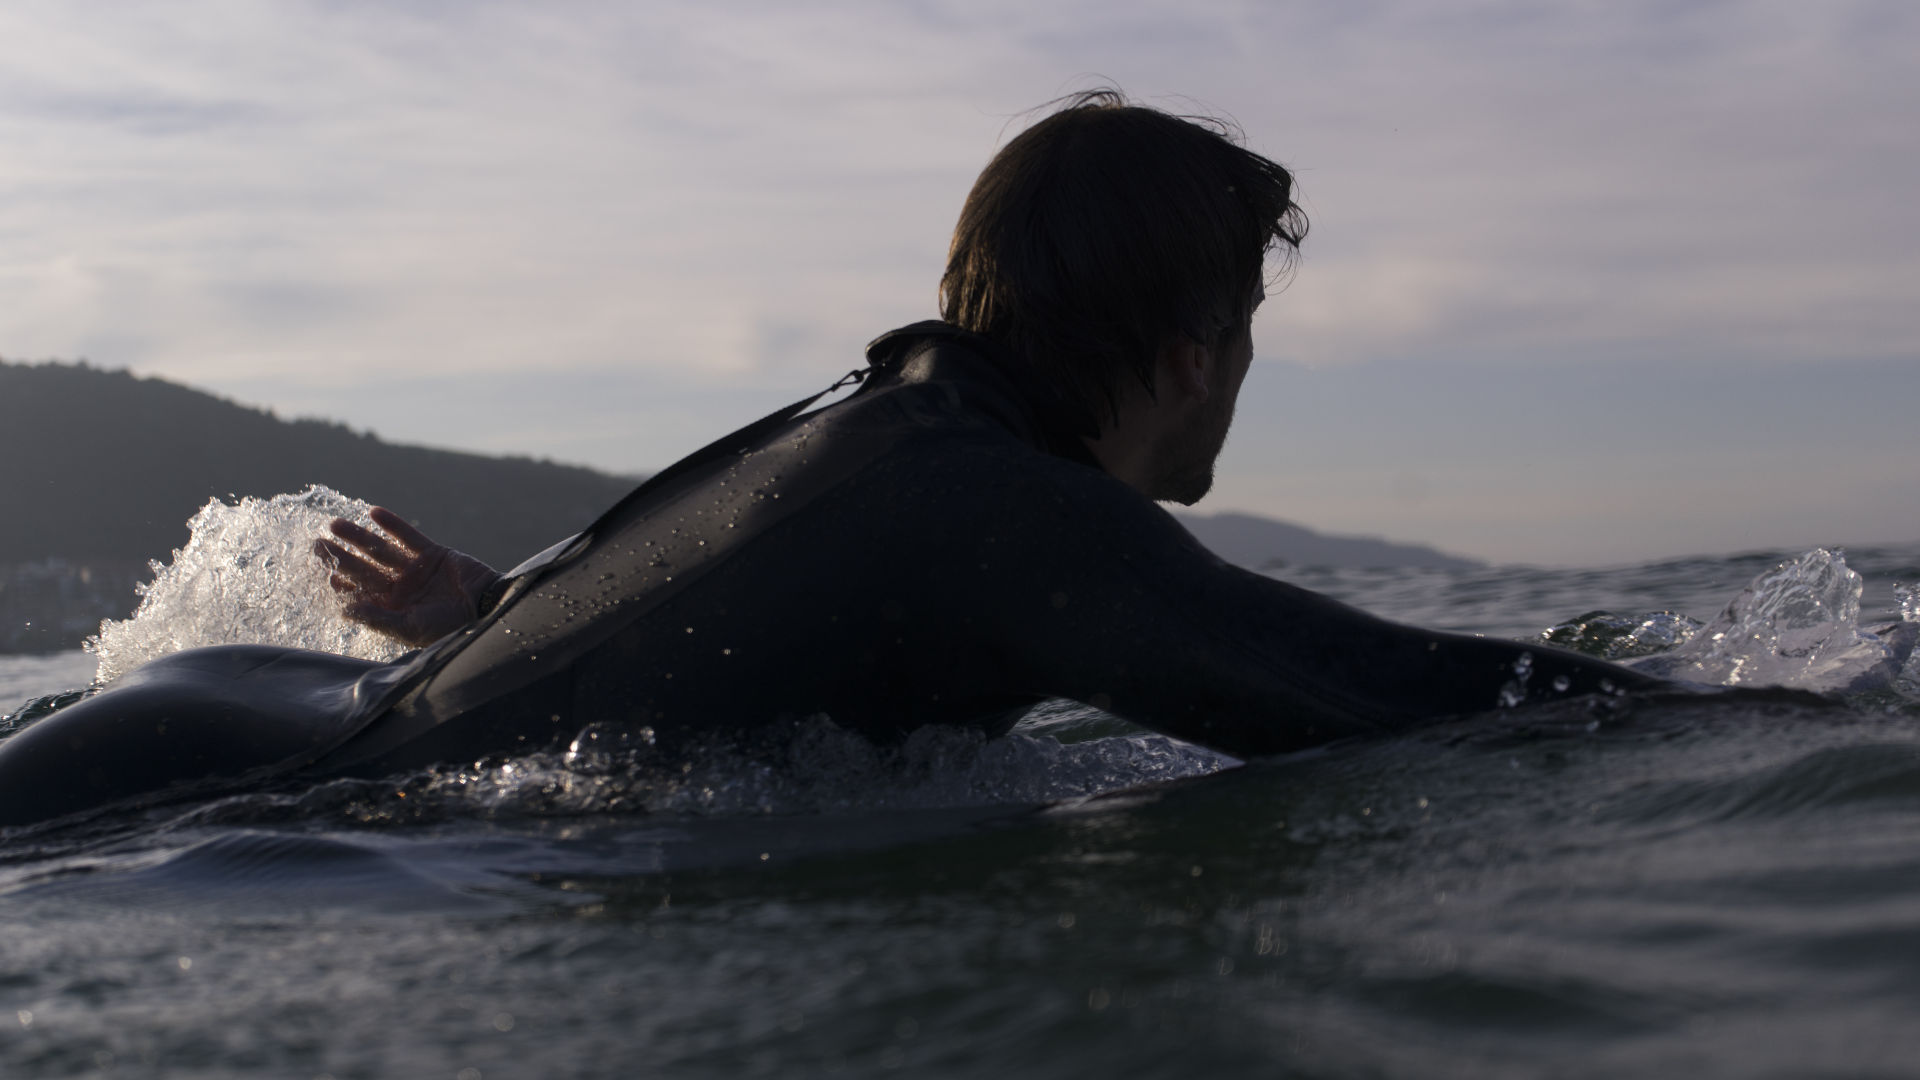 Surfer paddling out with a back zip wetsuit